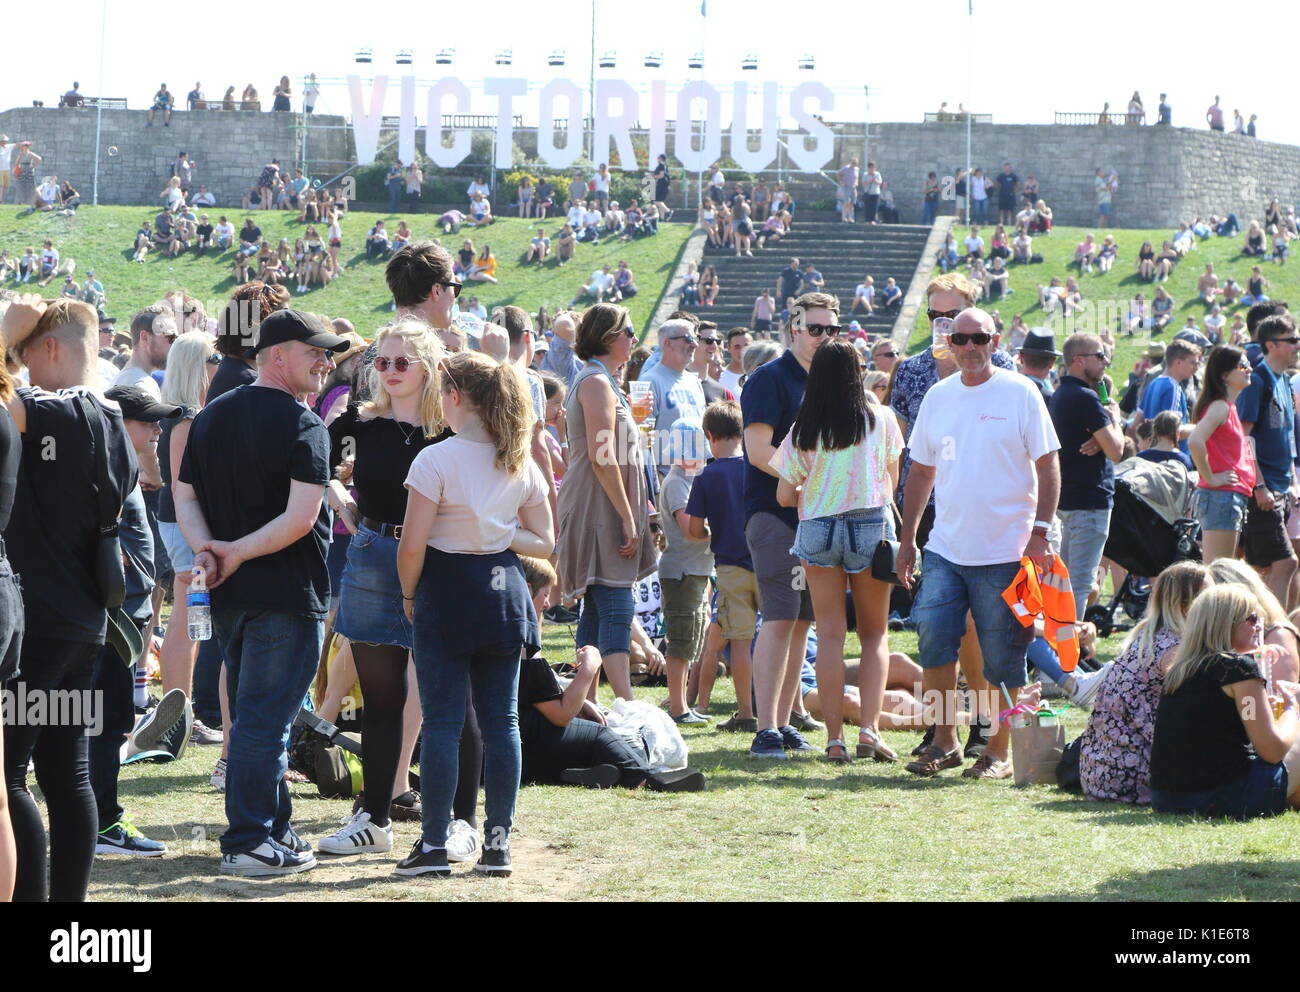 Portsmouth, UK. 26th Aug, 2017. Police in attendance at Victorious Festival at Southsea seafront, Portsmouth, Hants Stock Photo